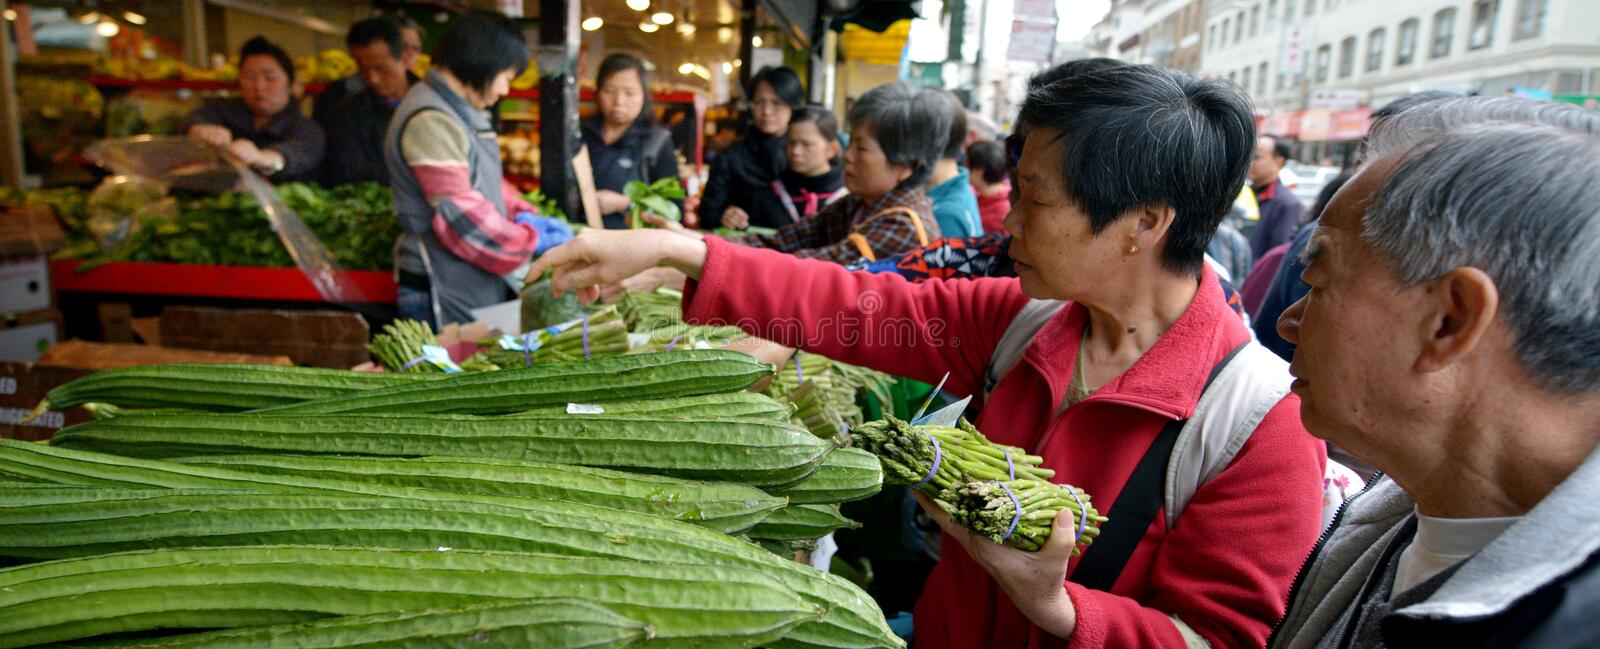 Chines people are shopping in a food market in Chinatown San Francisco California. SAN FRANCISCO - MAY 19 2015:Chines people are shopping in a food market in royalty free stock photos